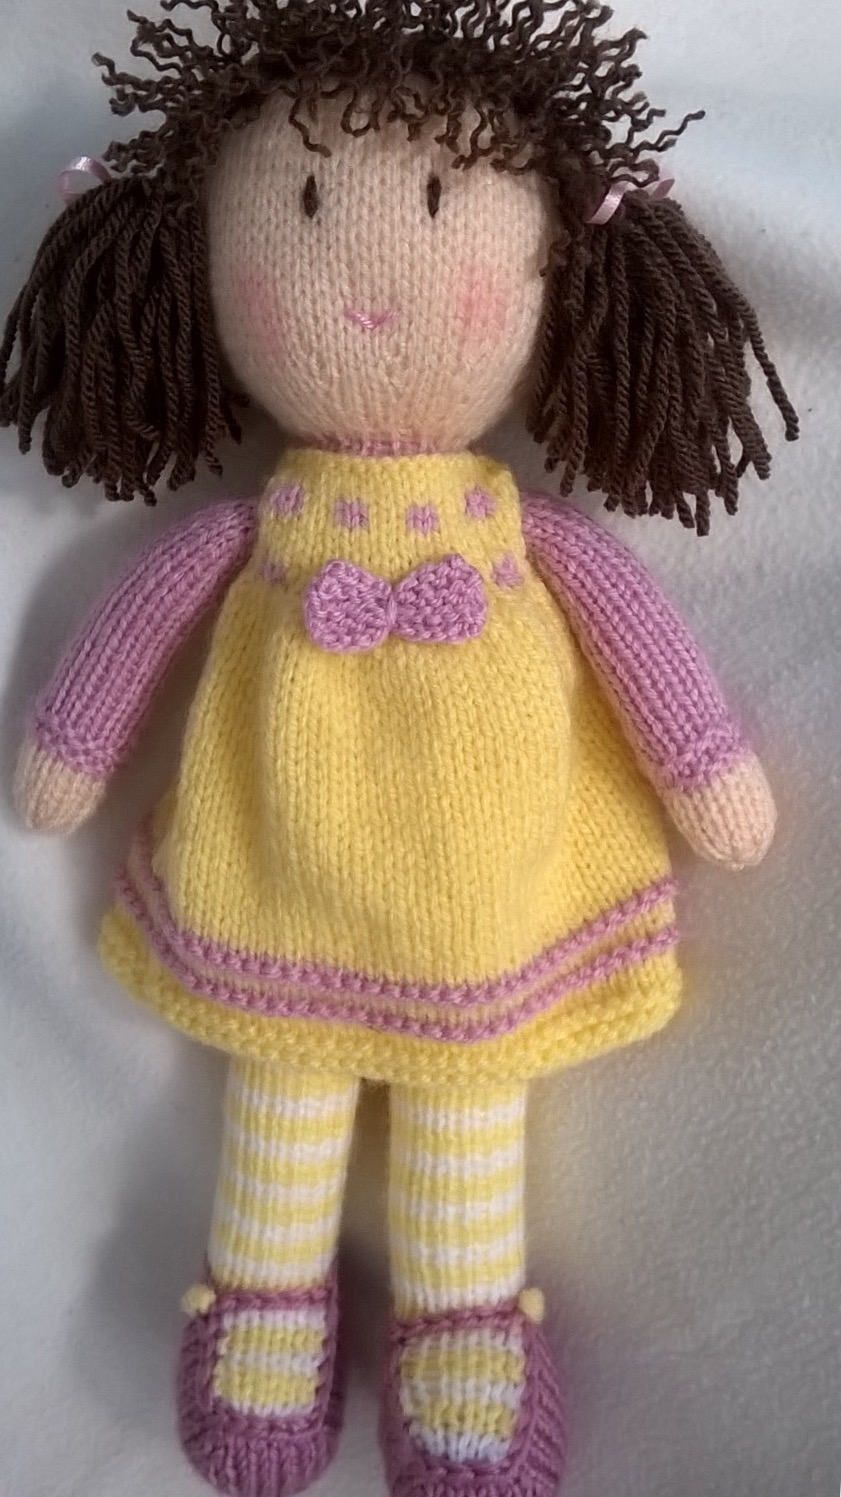 Hand knitted doll by DreamDollies on Etsy | Hand knitted doll by ...